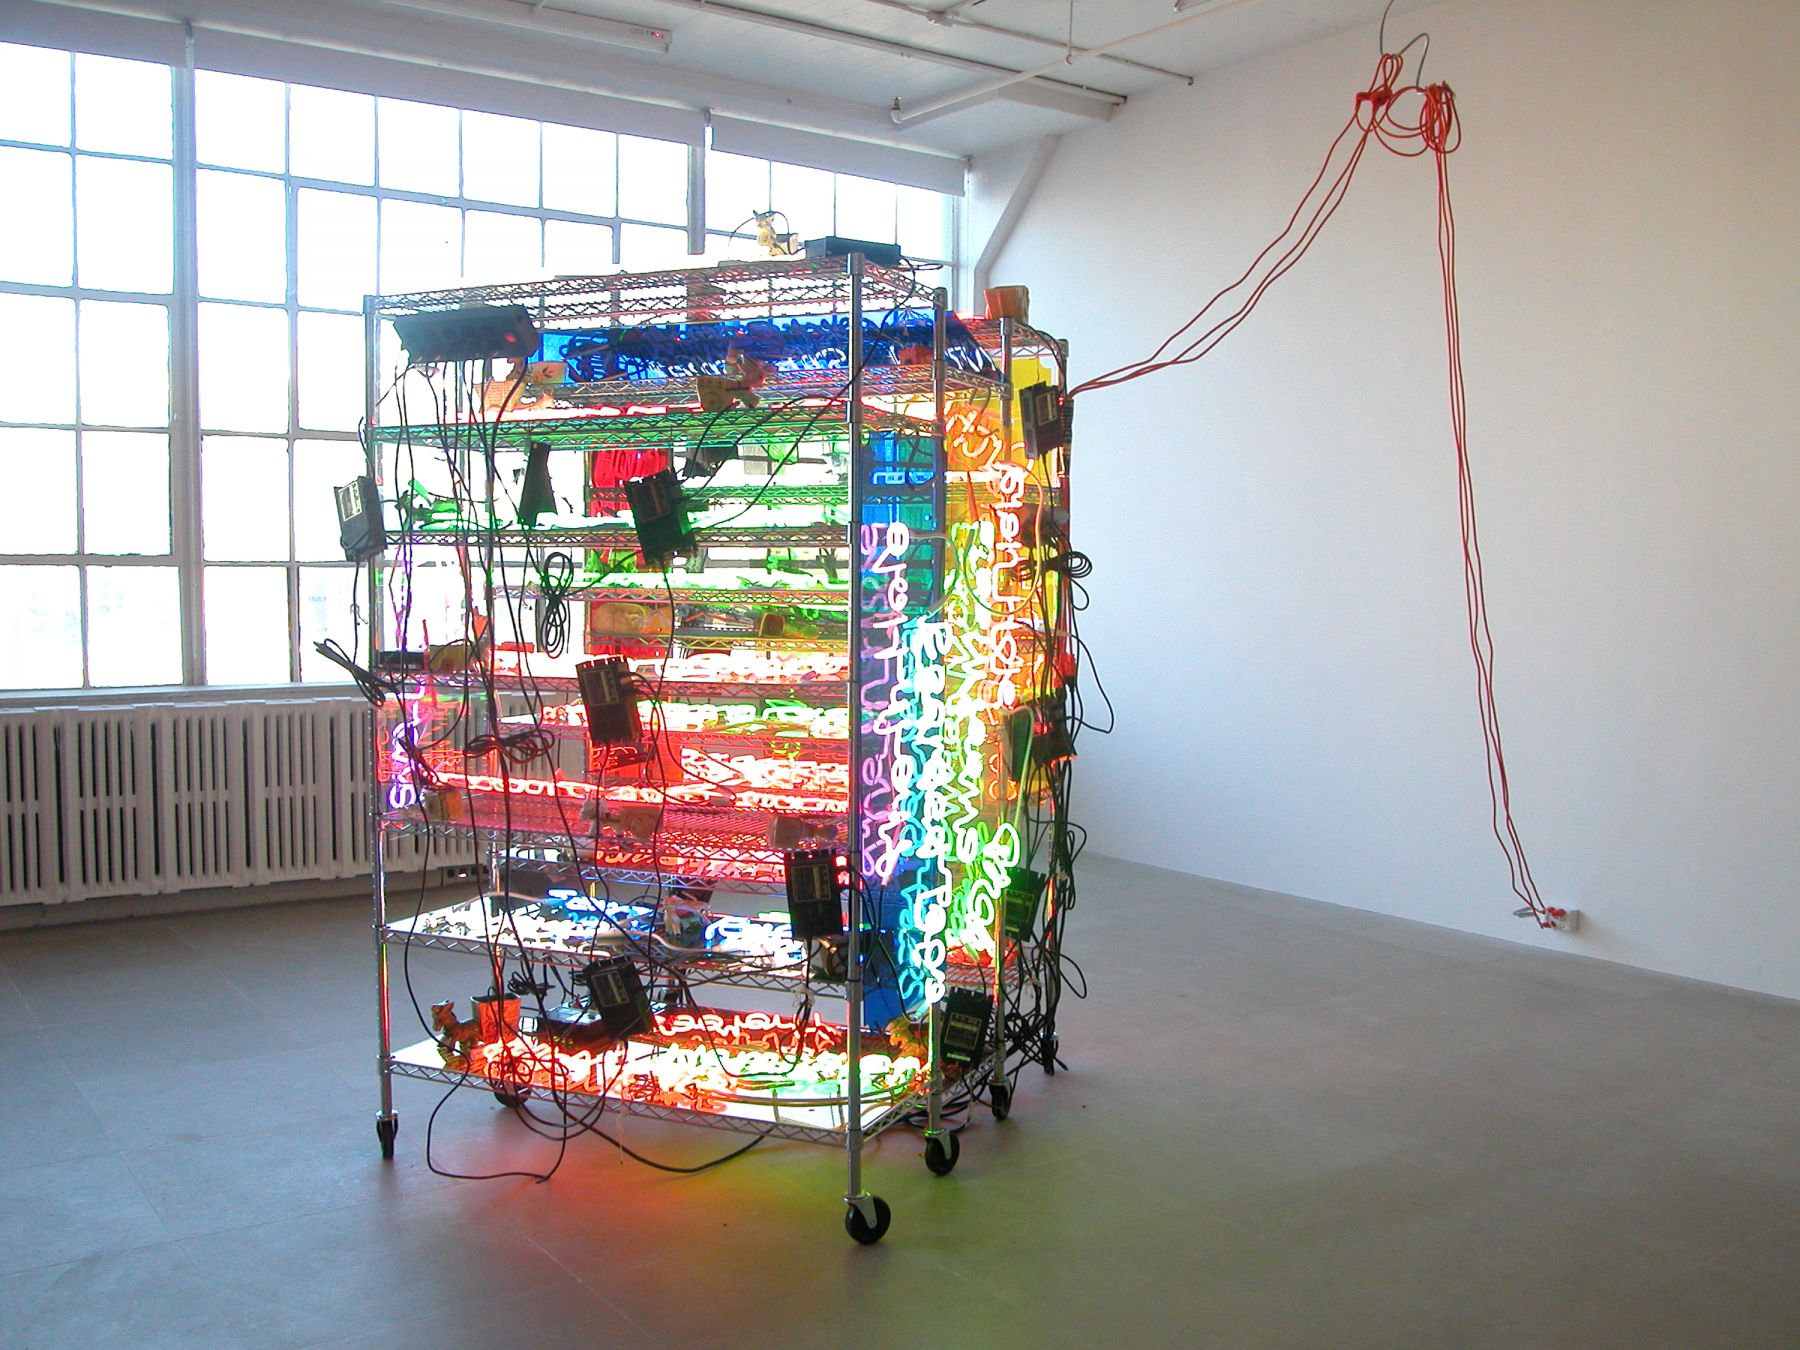 Jason Rhoades, Shelf (Love Pocket), 2003 (detail), Seville Ultra Durable chrome shelving system with 17 shelves, 23 neon panels, 41 ceramic donkey carts, 3 power strips, 3 orange extension cables, 14 metal hooks, 83 x 54 x 24 inches